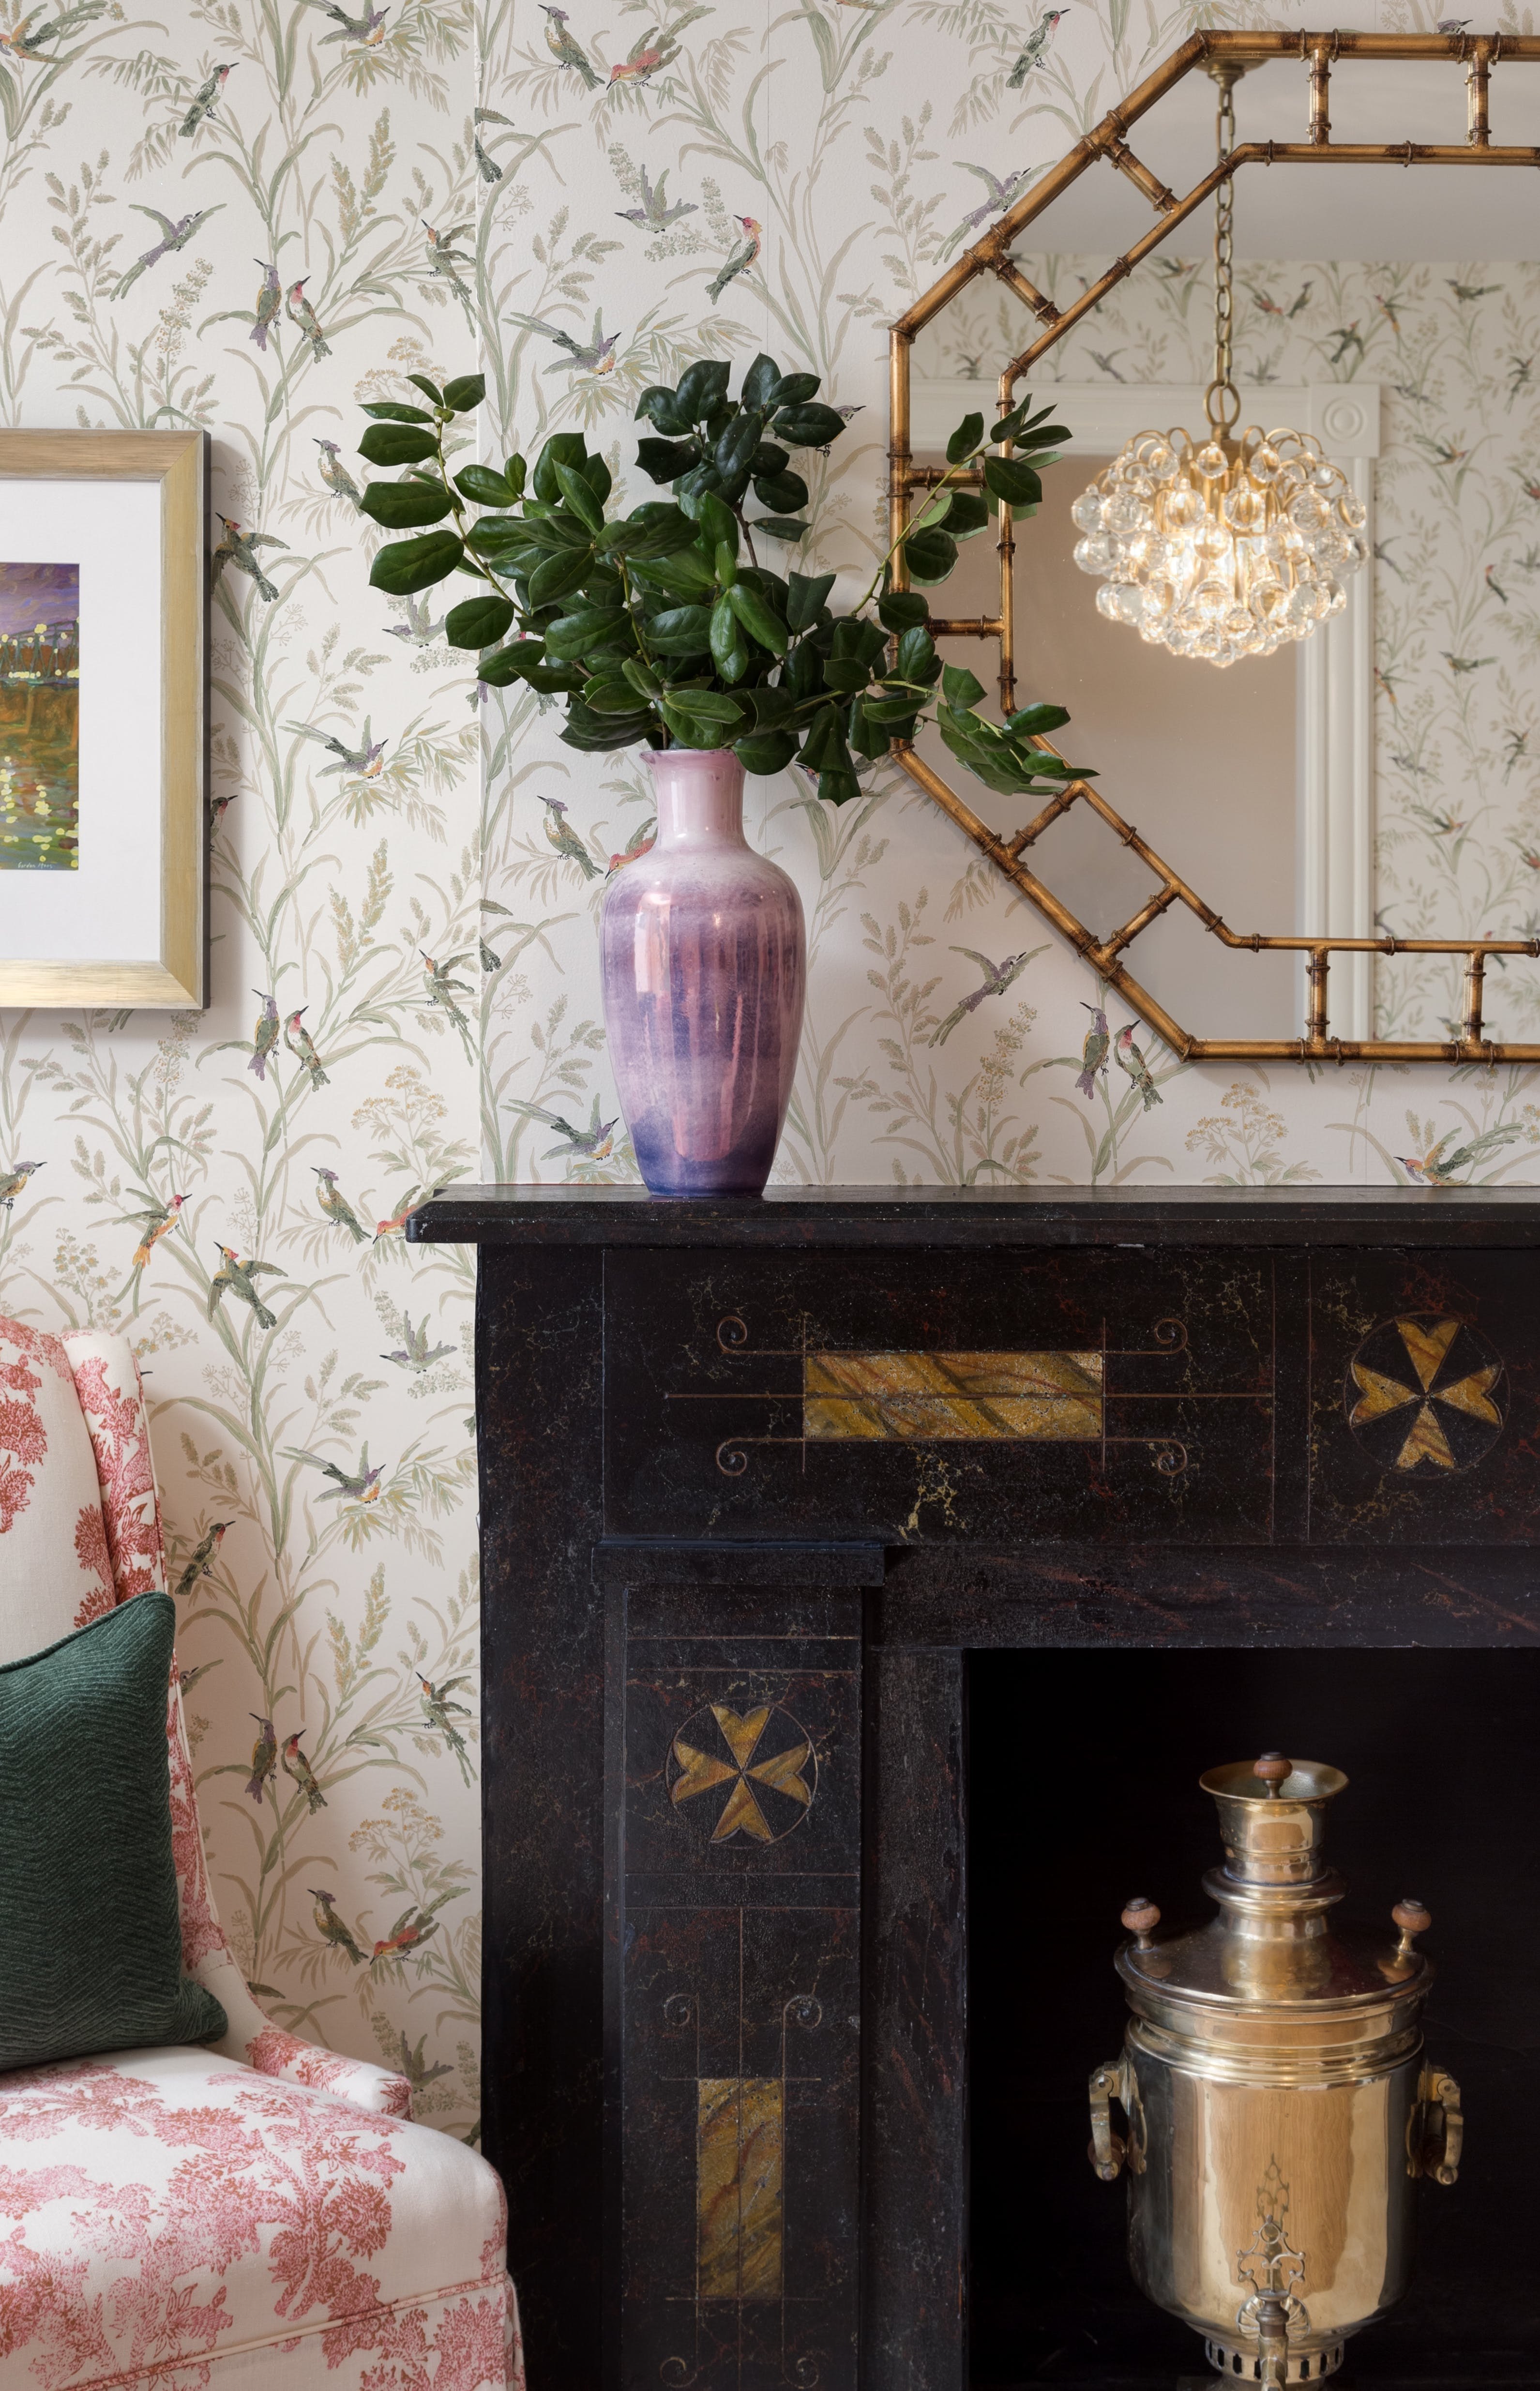 Detail photo of wallpaper, rustic wall mirror and vases